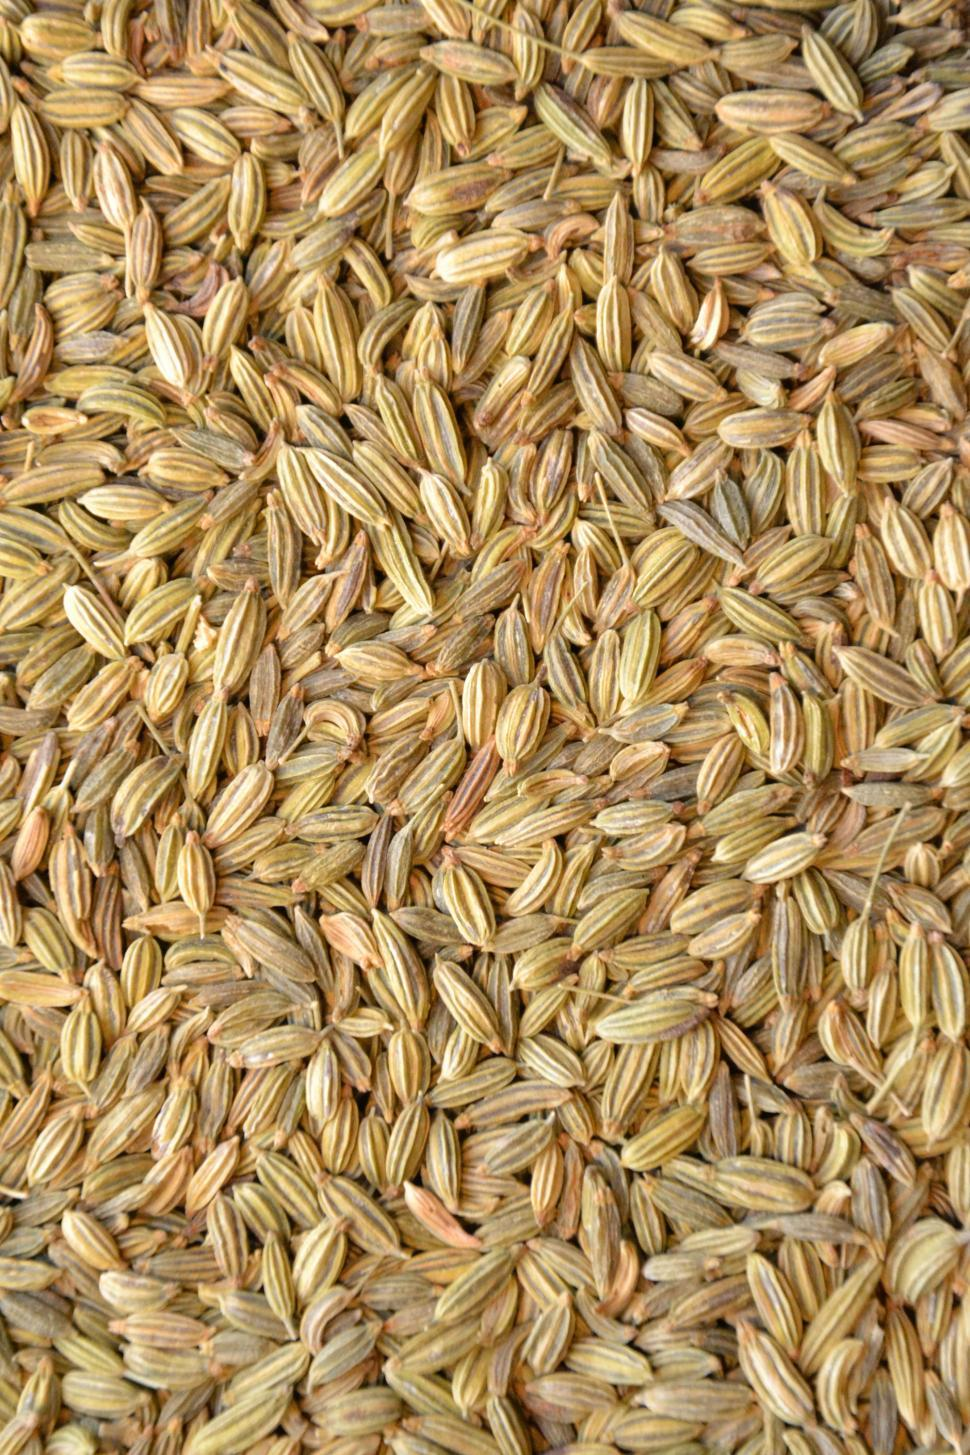 Download Free Stock HD Photo of Fennel seeds  Online